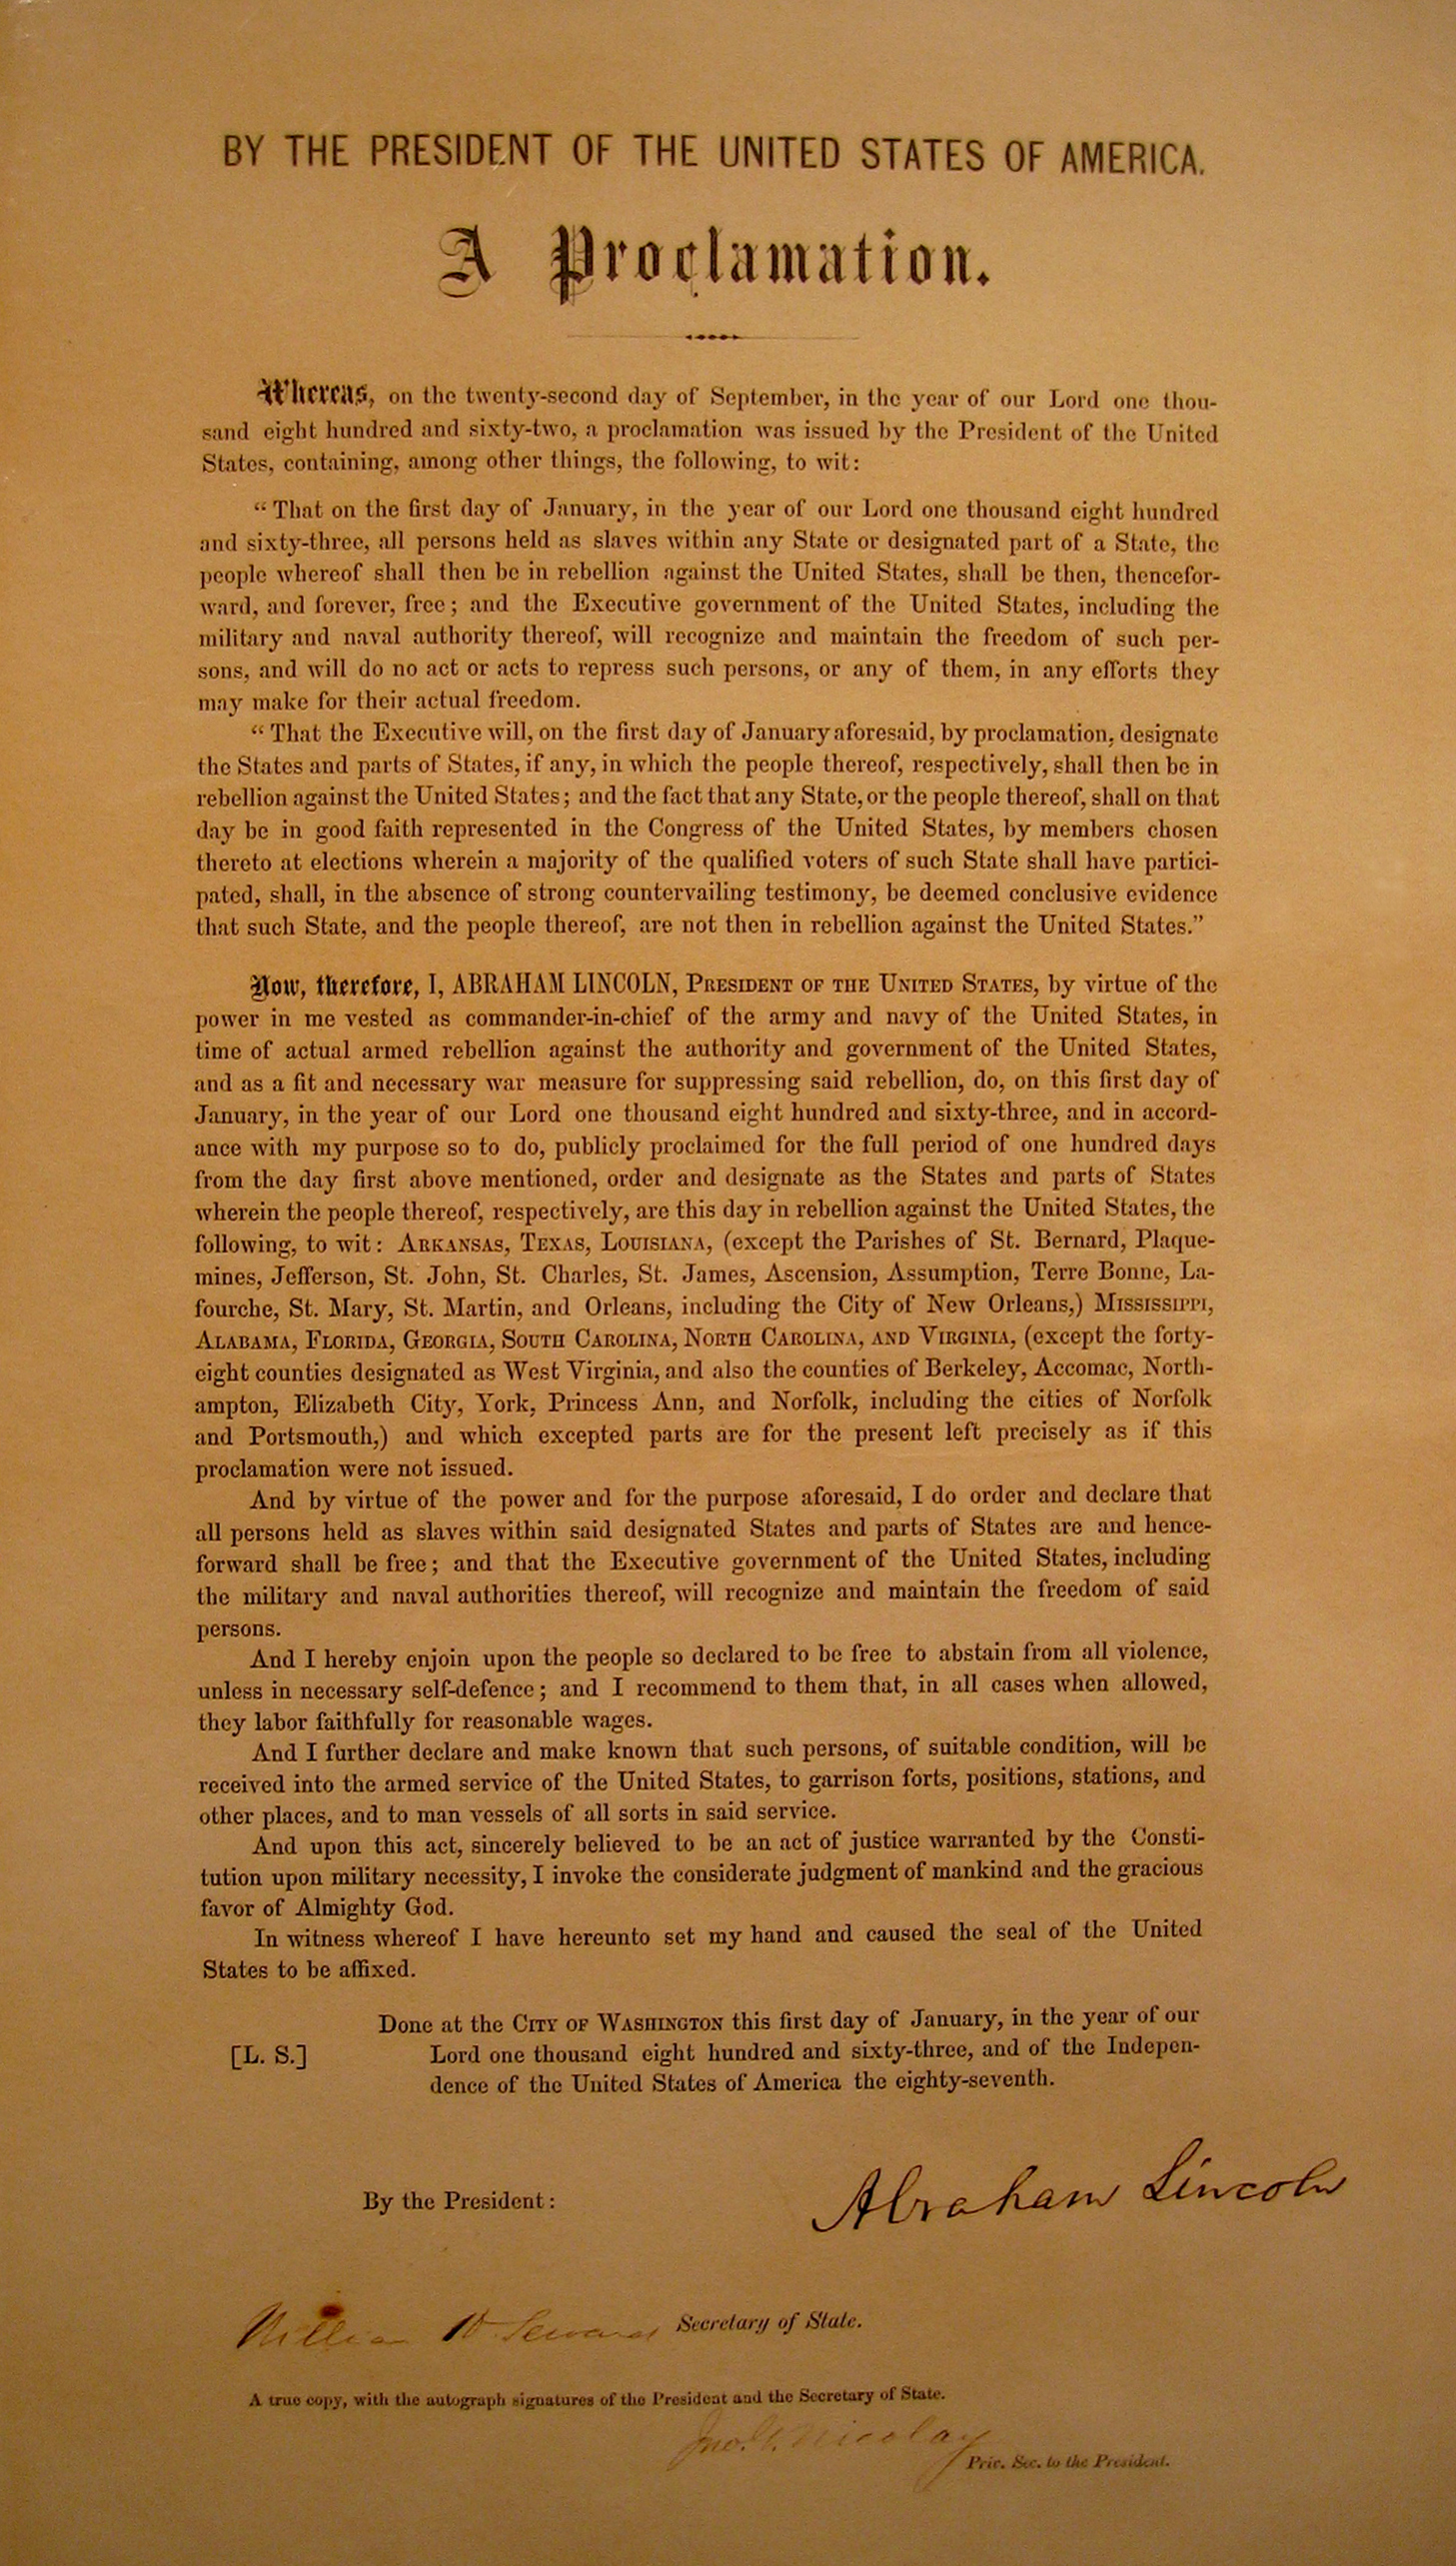 emancipation proclamation essay but not life after the emancipation proclamation the the african american lectionary